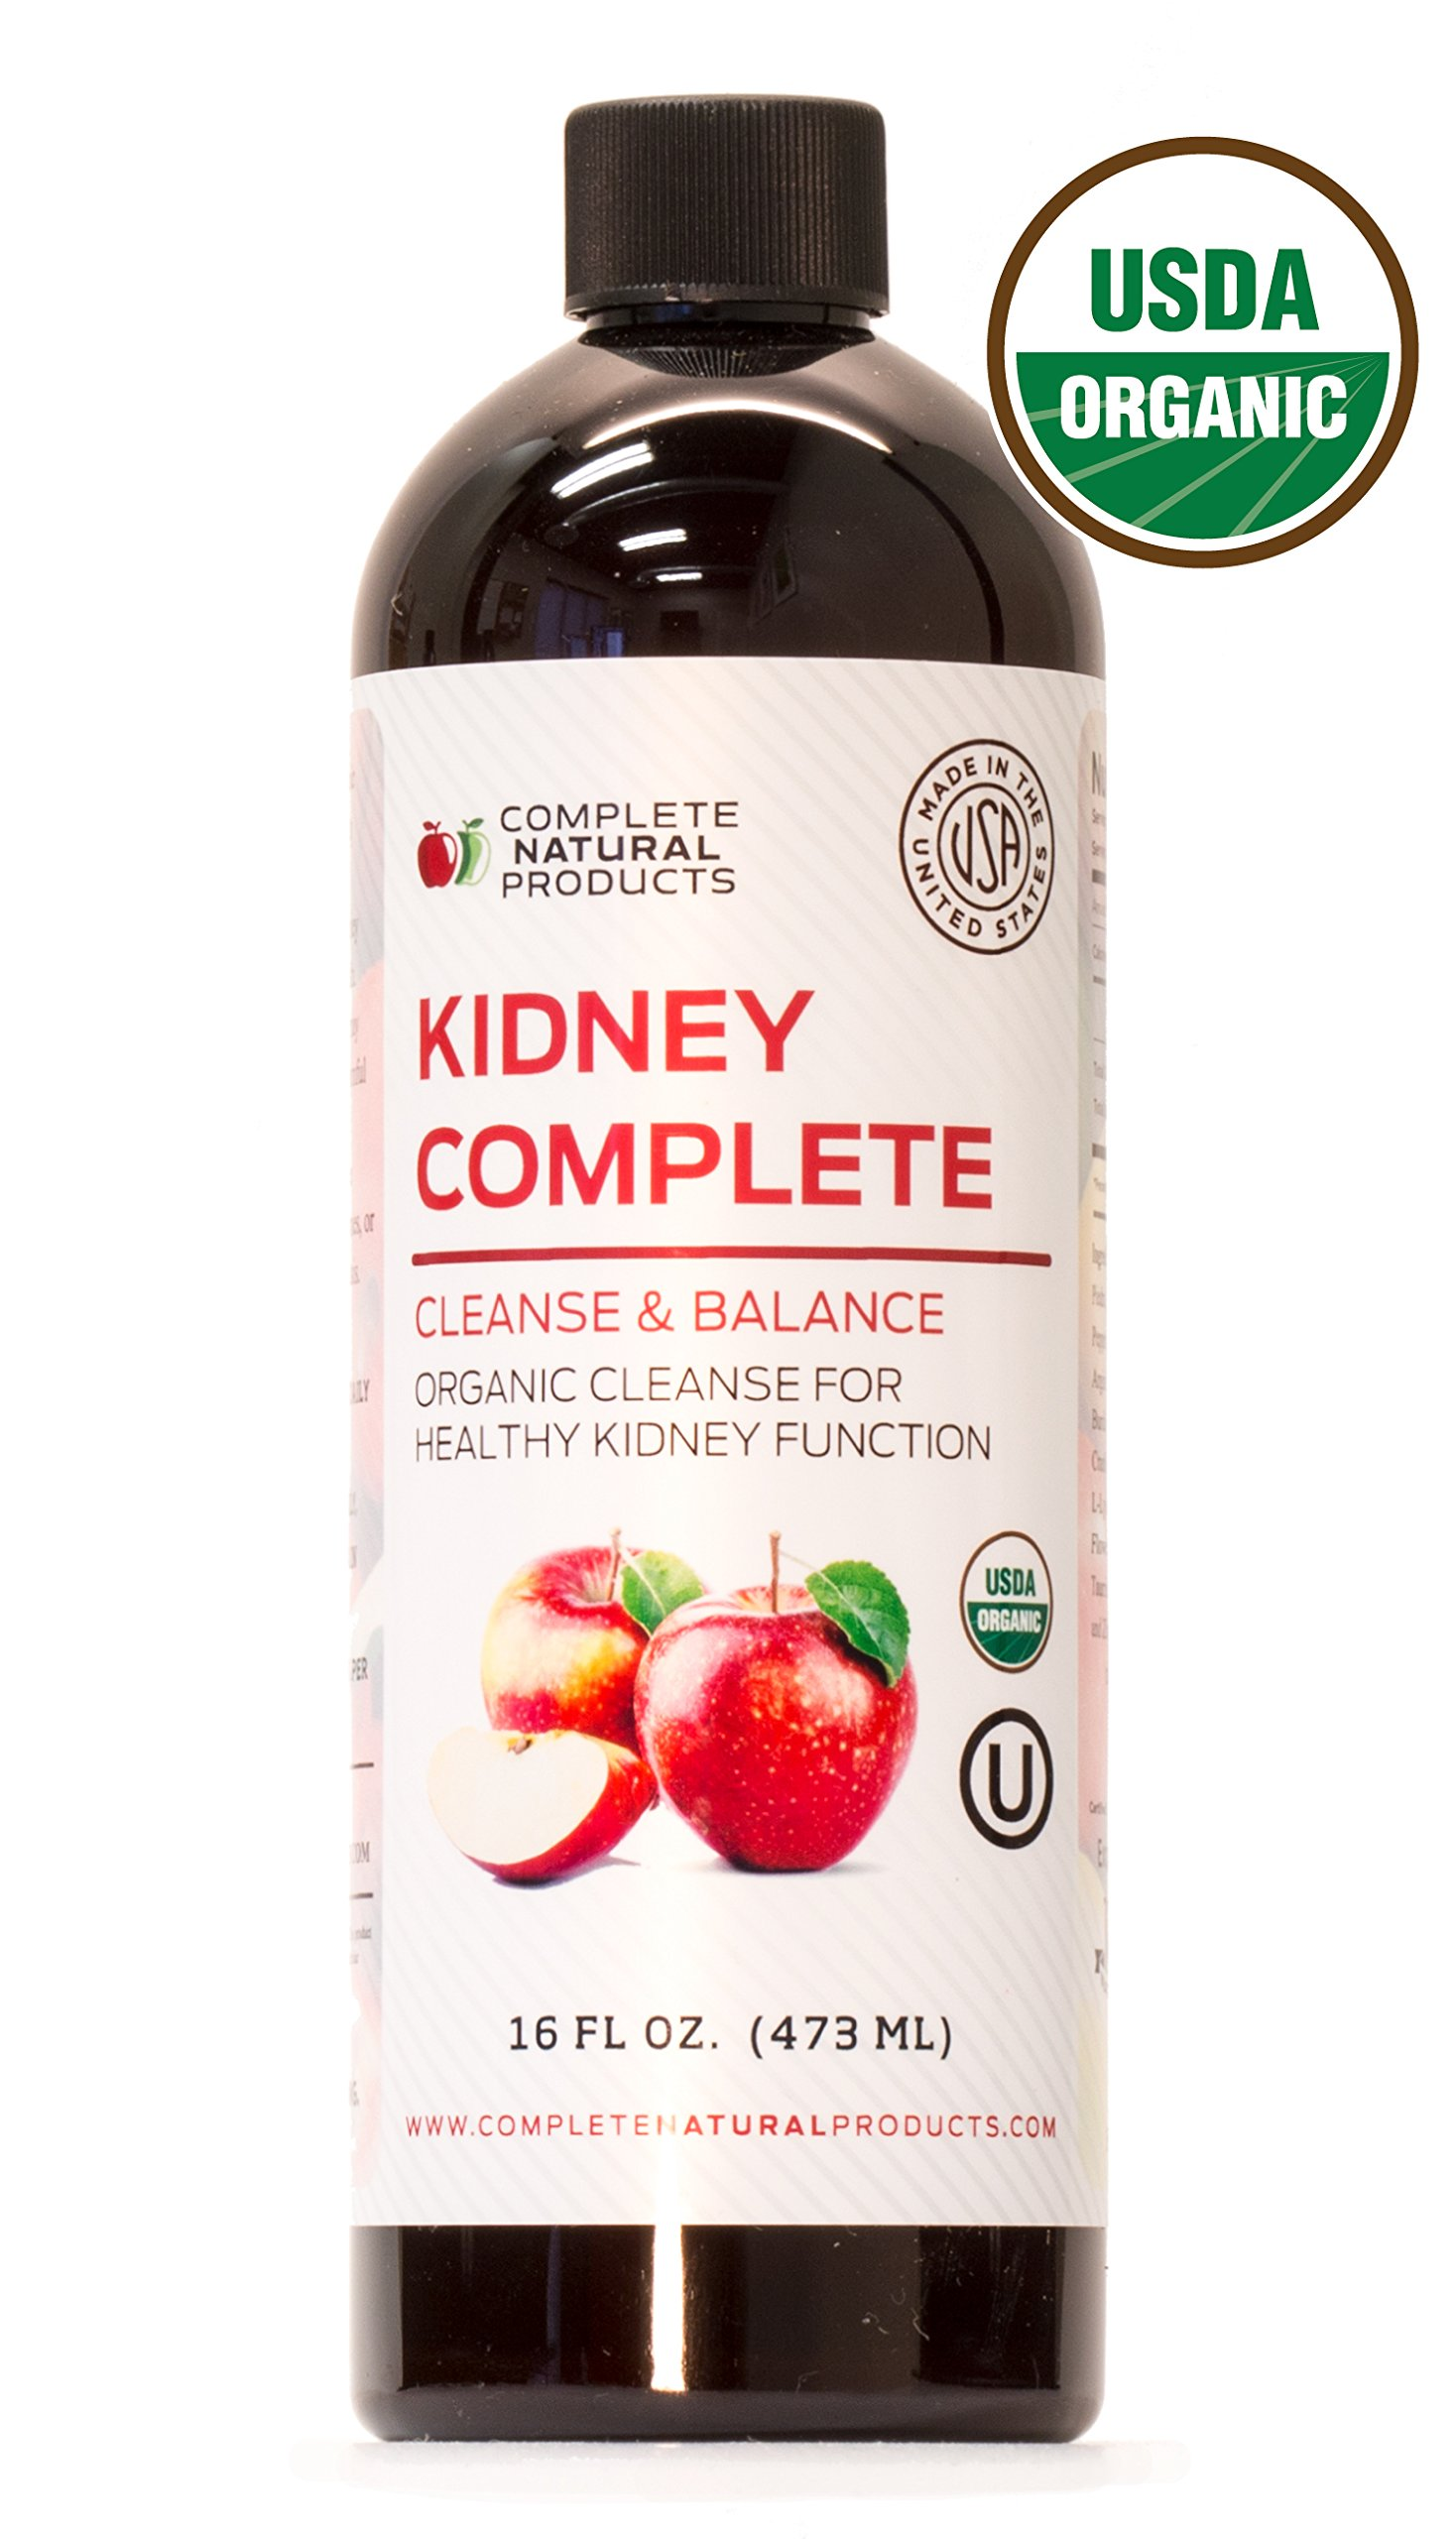 Kidney Complete 16oz - Organic Liquid Kidney Stone Breaker, Kidney Stone Dissolver & Natural Kidney Stones Treatment by Complete Natural Products